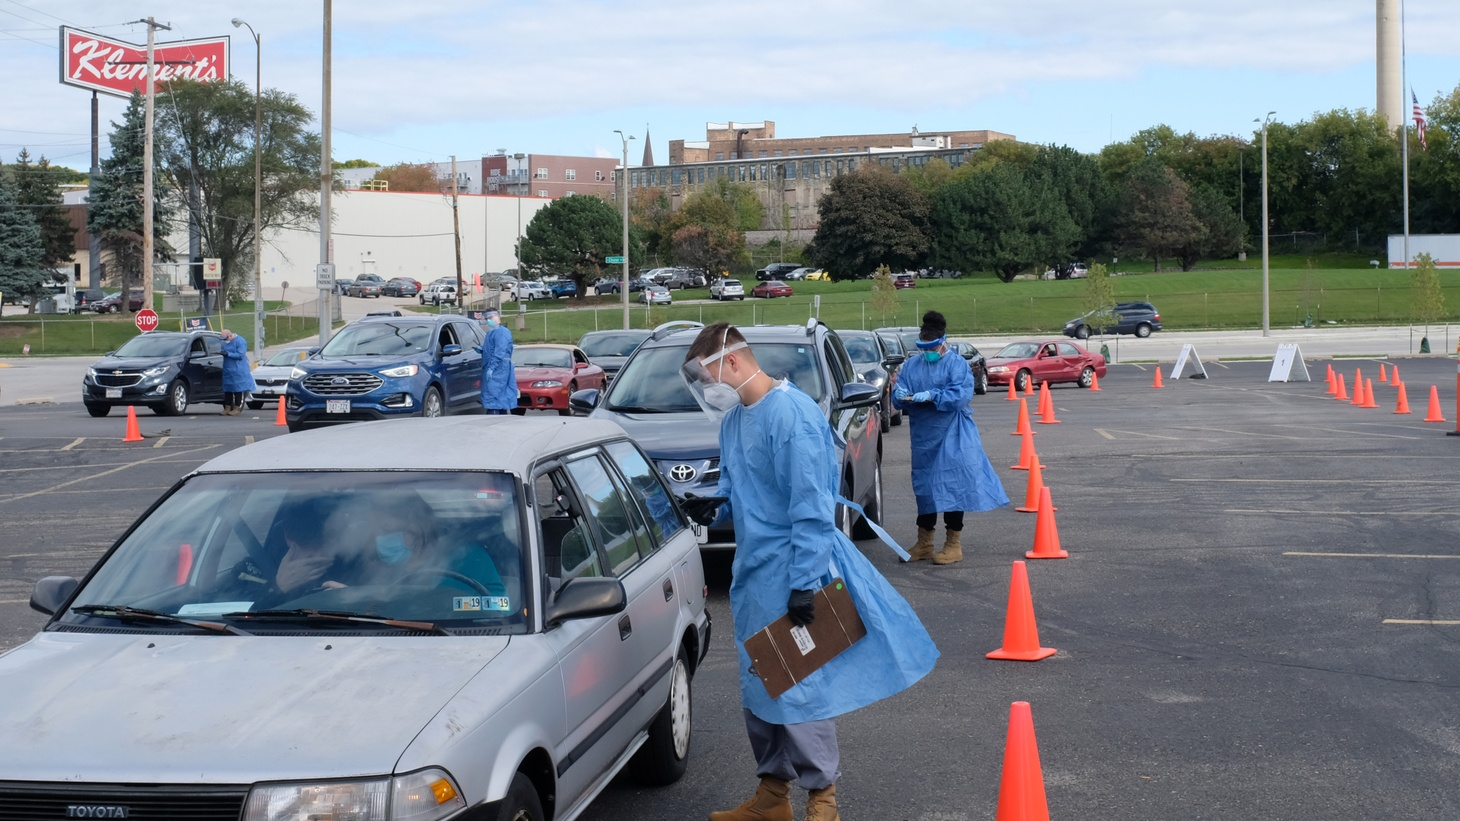 People line up in their vehicles to undergo the coronavirus disease (COVID-19) tests, distributed by the Wisconsin National Guard at the United Migrant Opportunity Services center, as cases spread in the Midwest, in Milwaukee, Wisconsin, U.S., October 2, 2020.